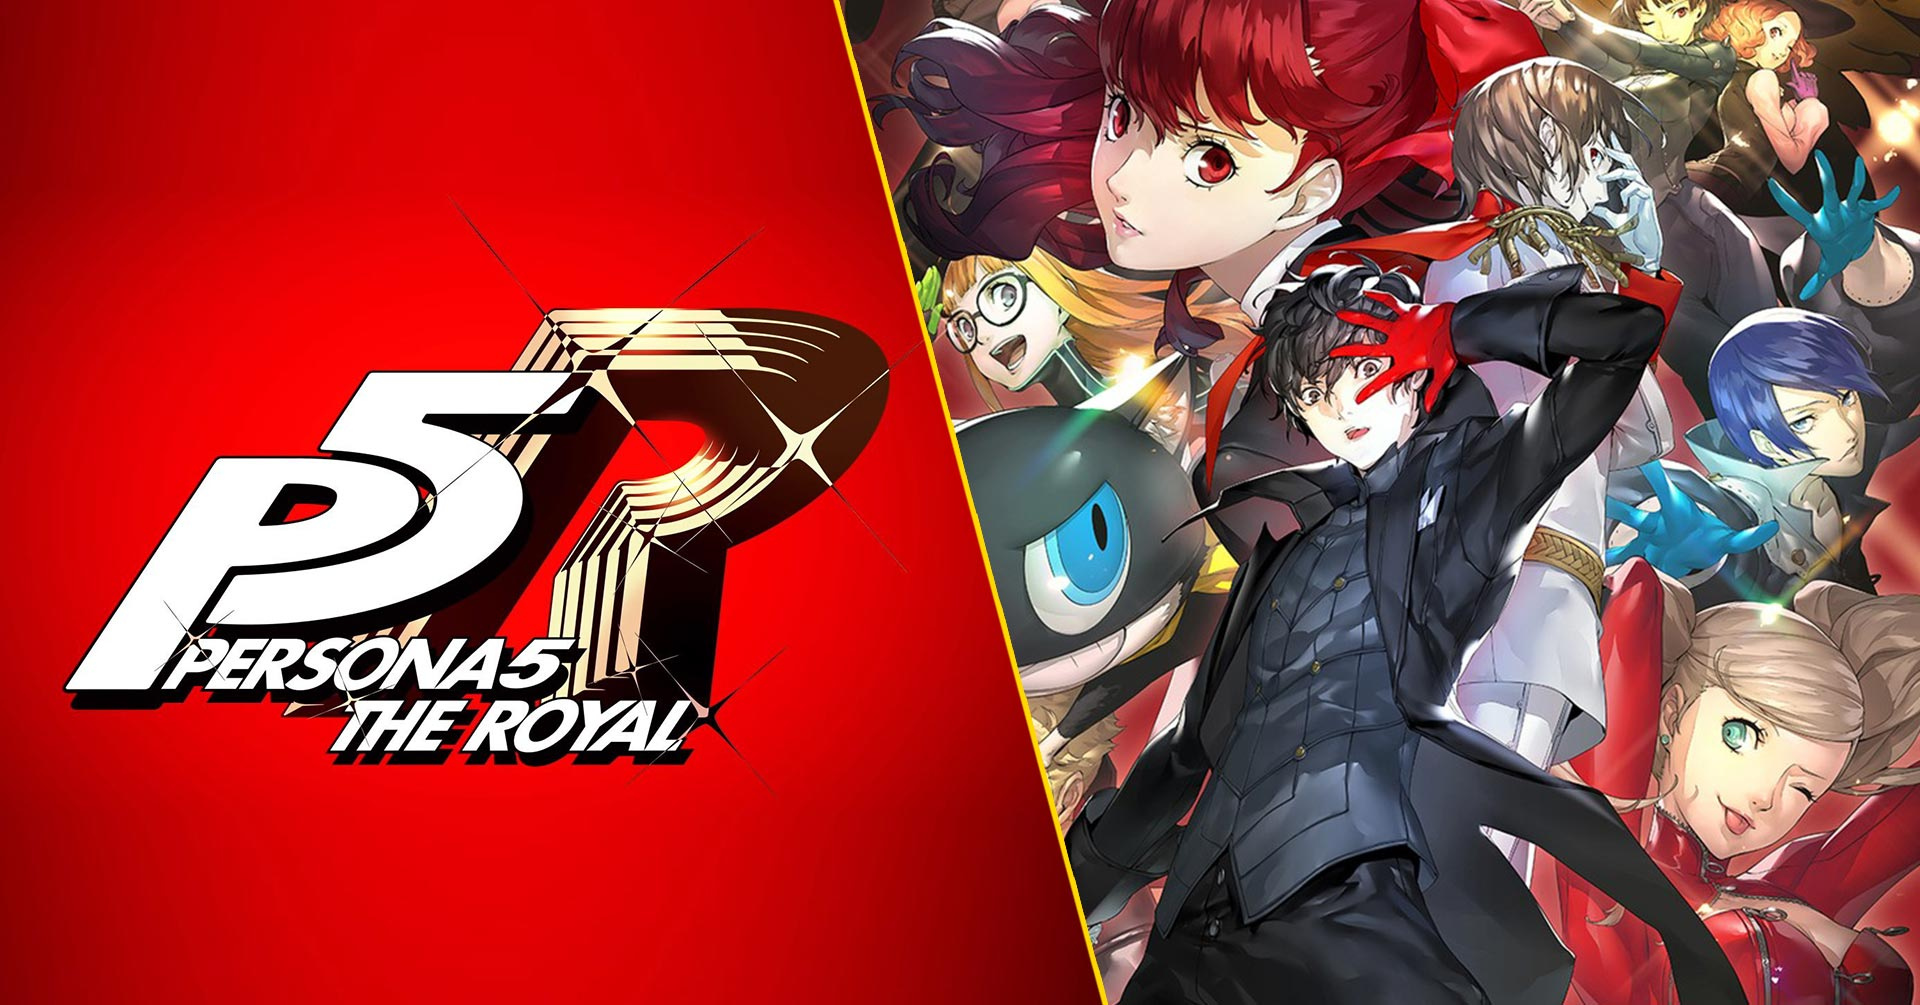 Persona 5 The Royal Cover